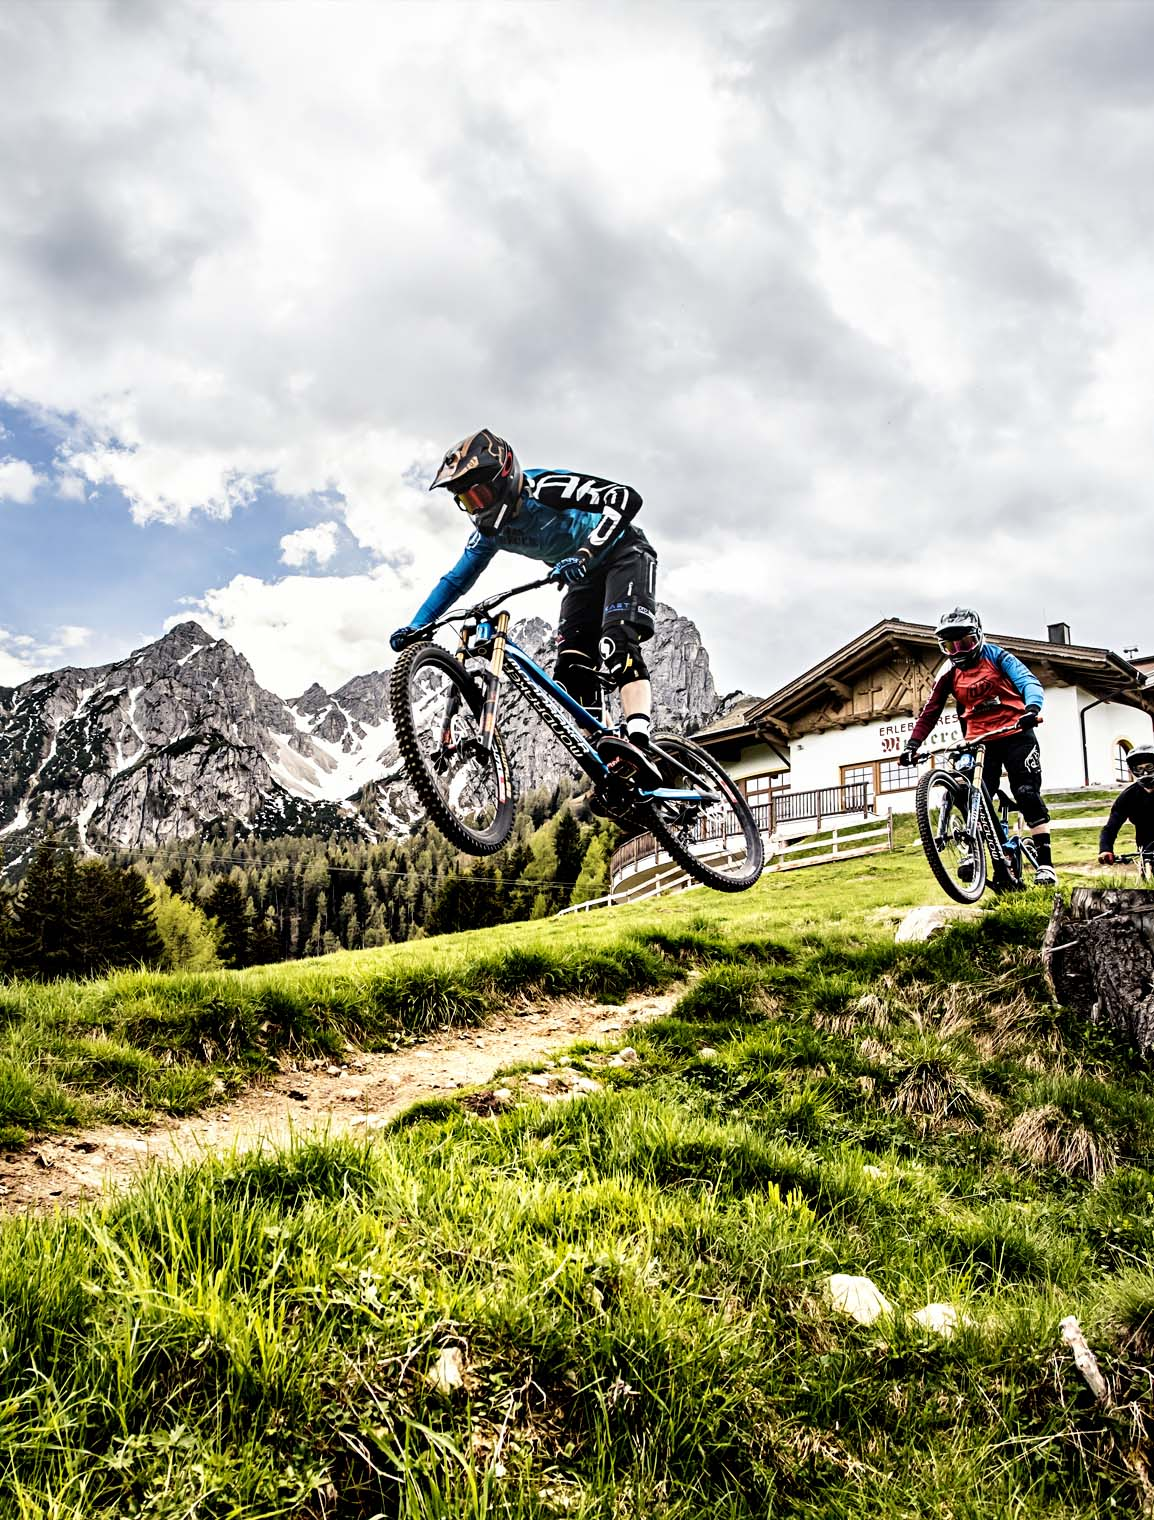 sheep_innsbruck_muttereralm_crankworx_tourism_downhill